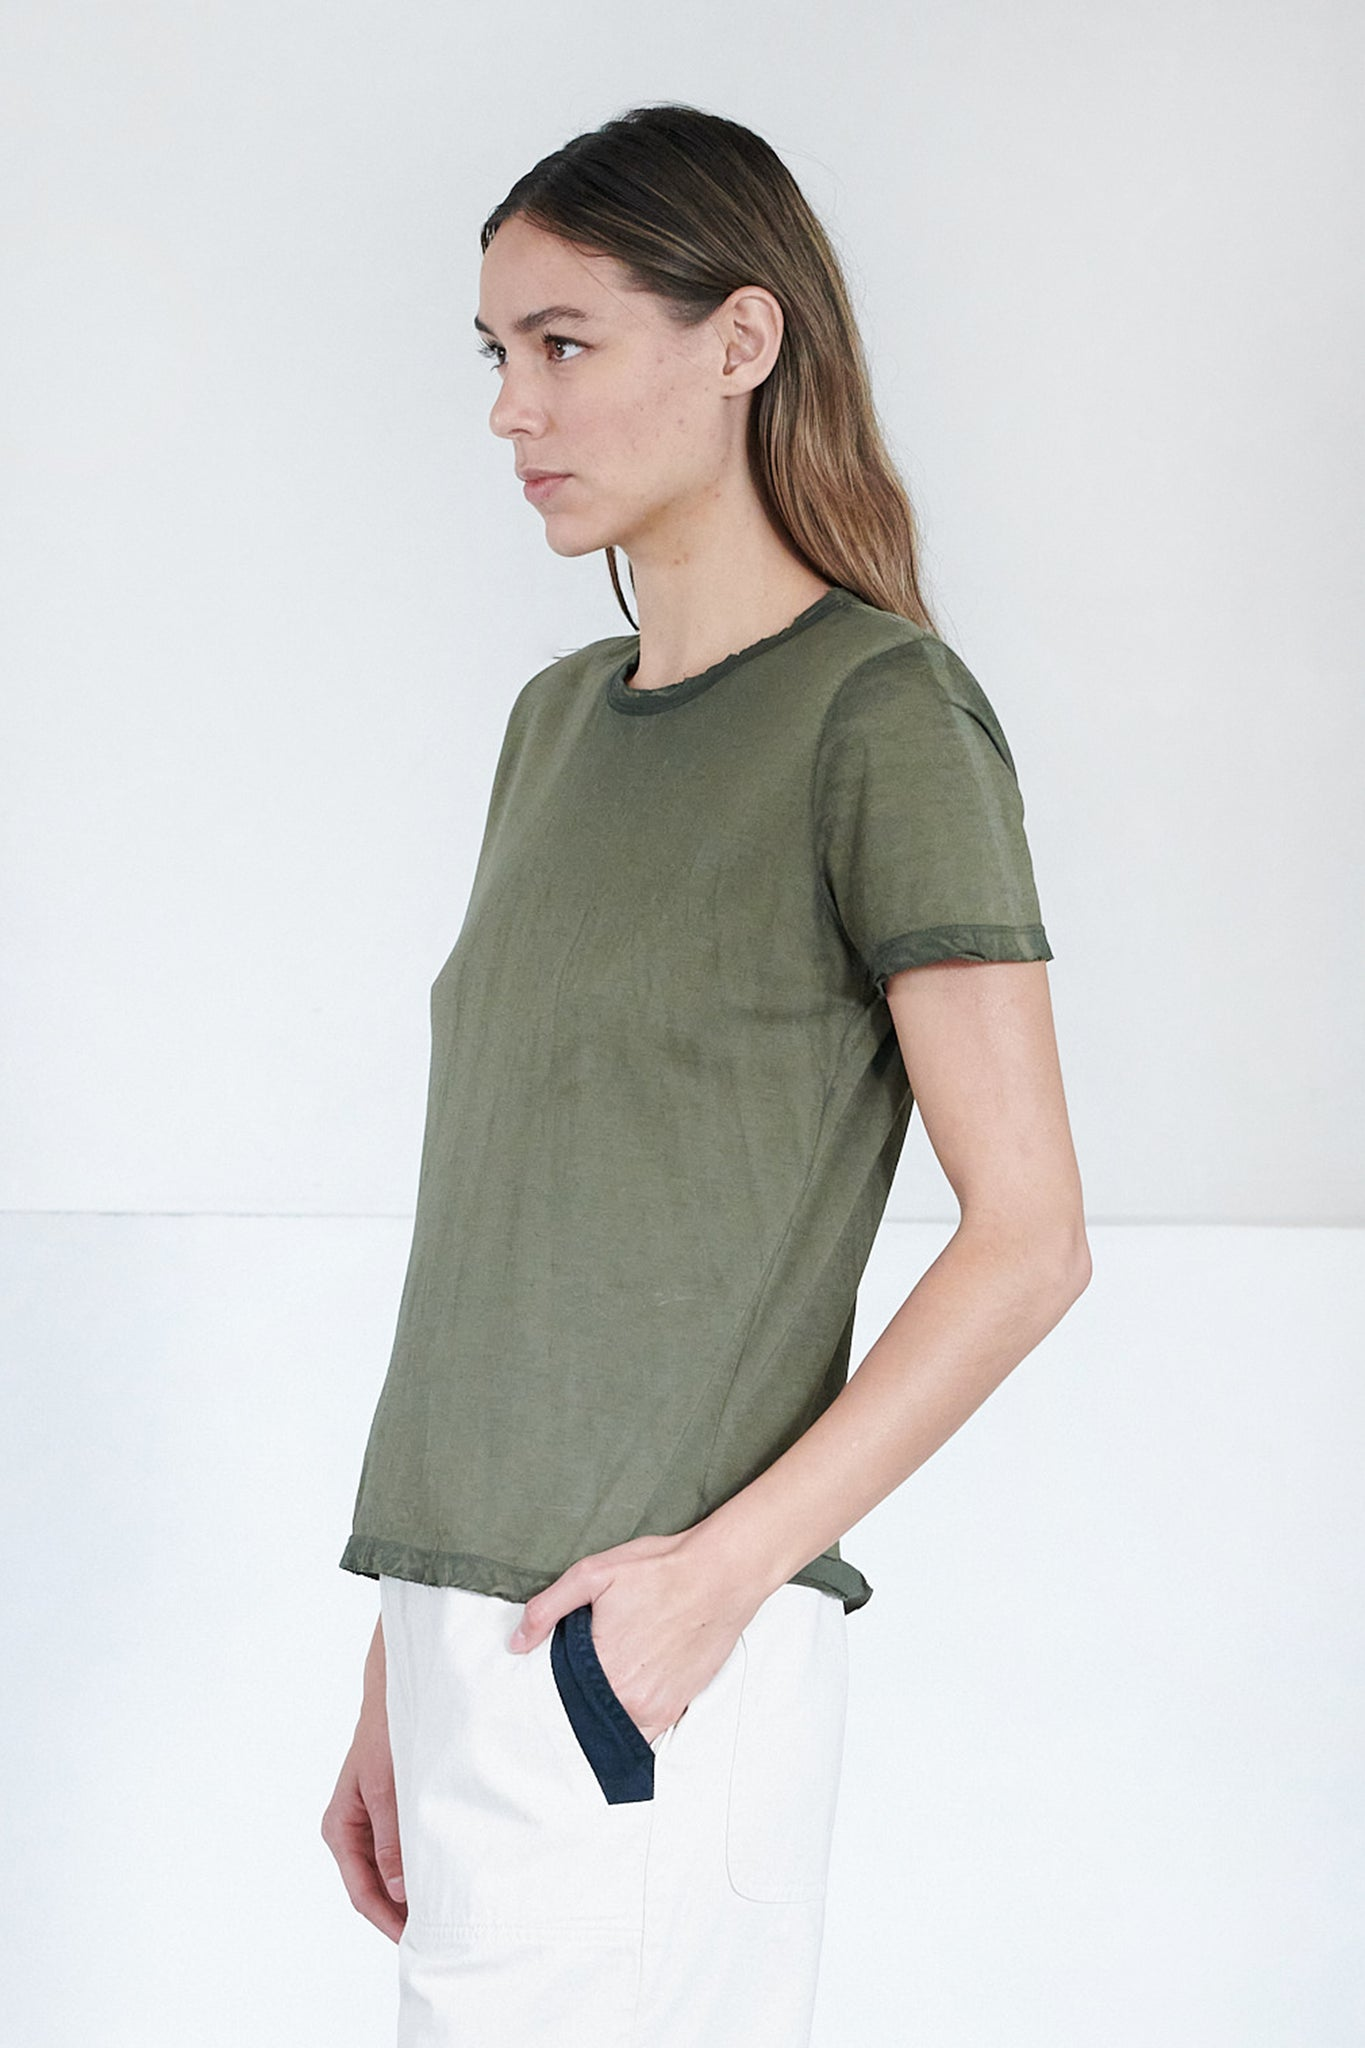 Cotton Citizen - standard tee, avocado